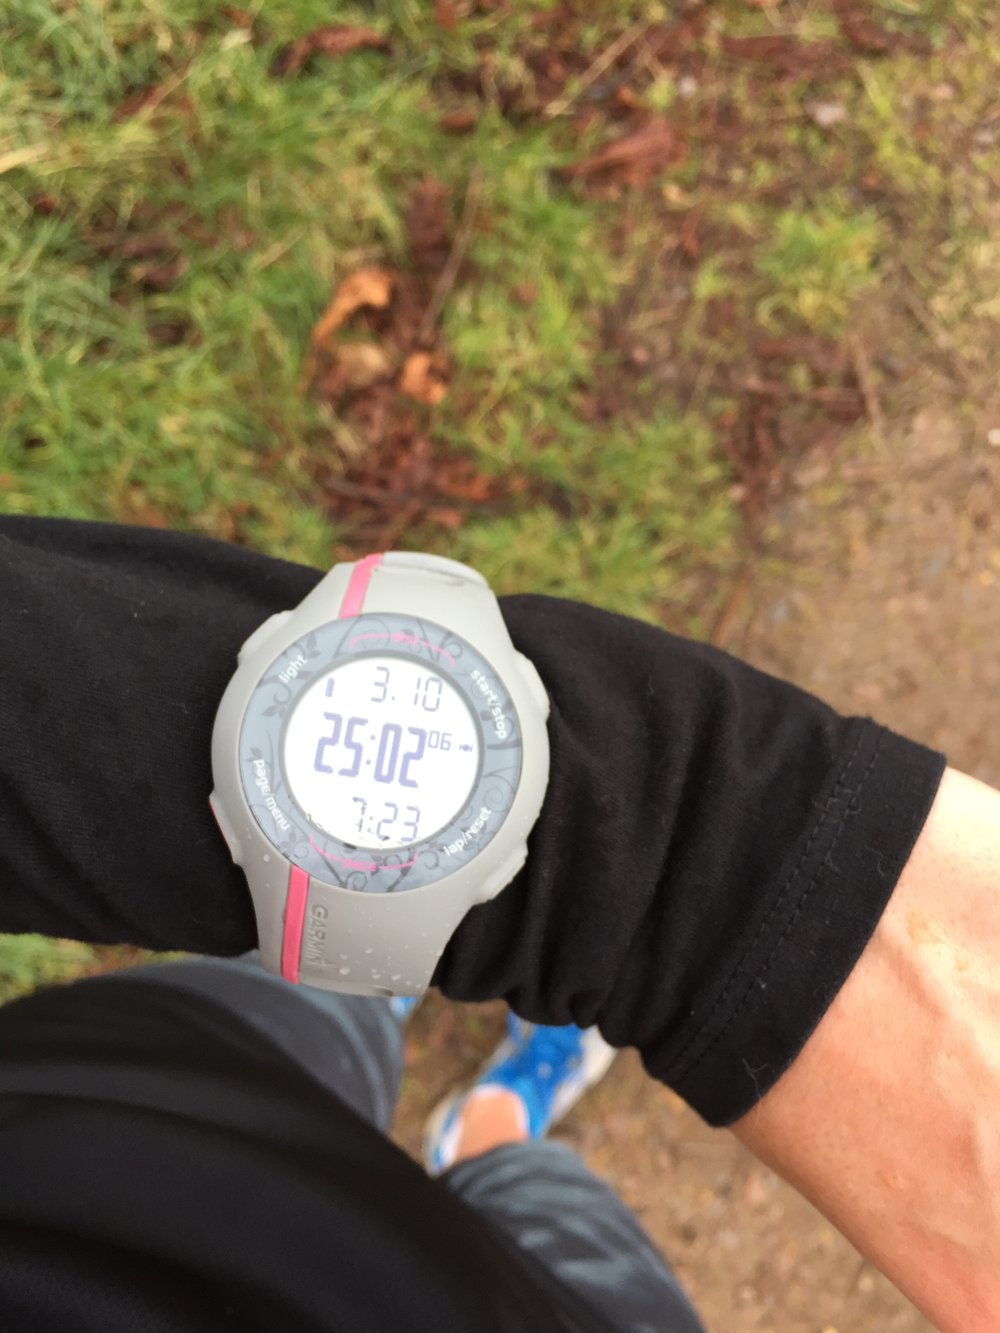 The illustrious sub-25 minute 5km is still out of my reach...